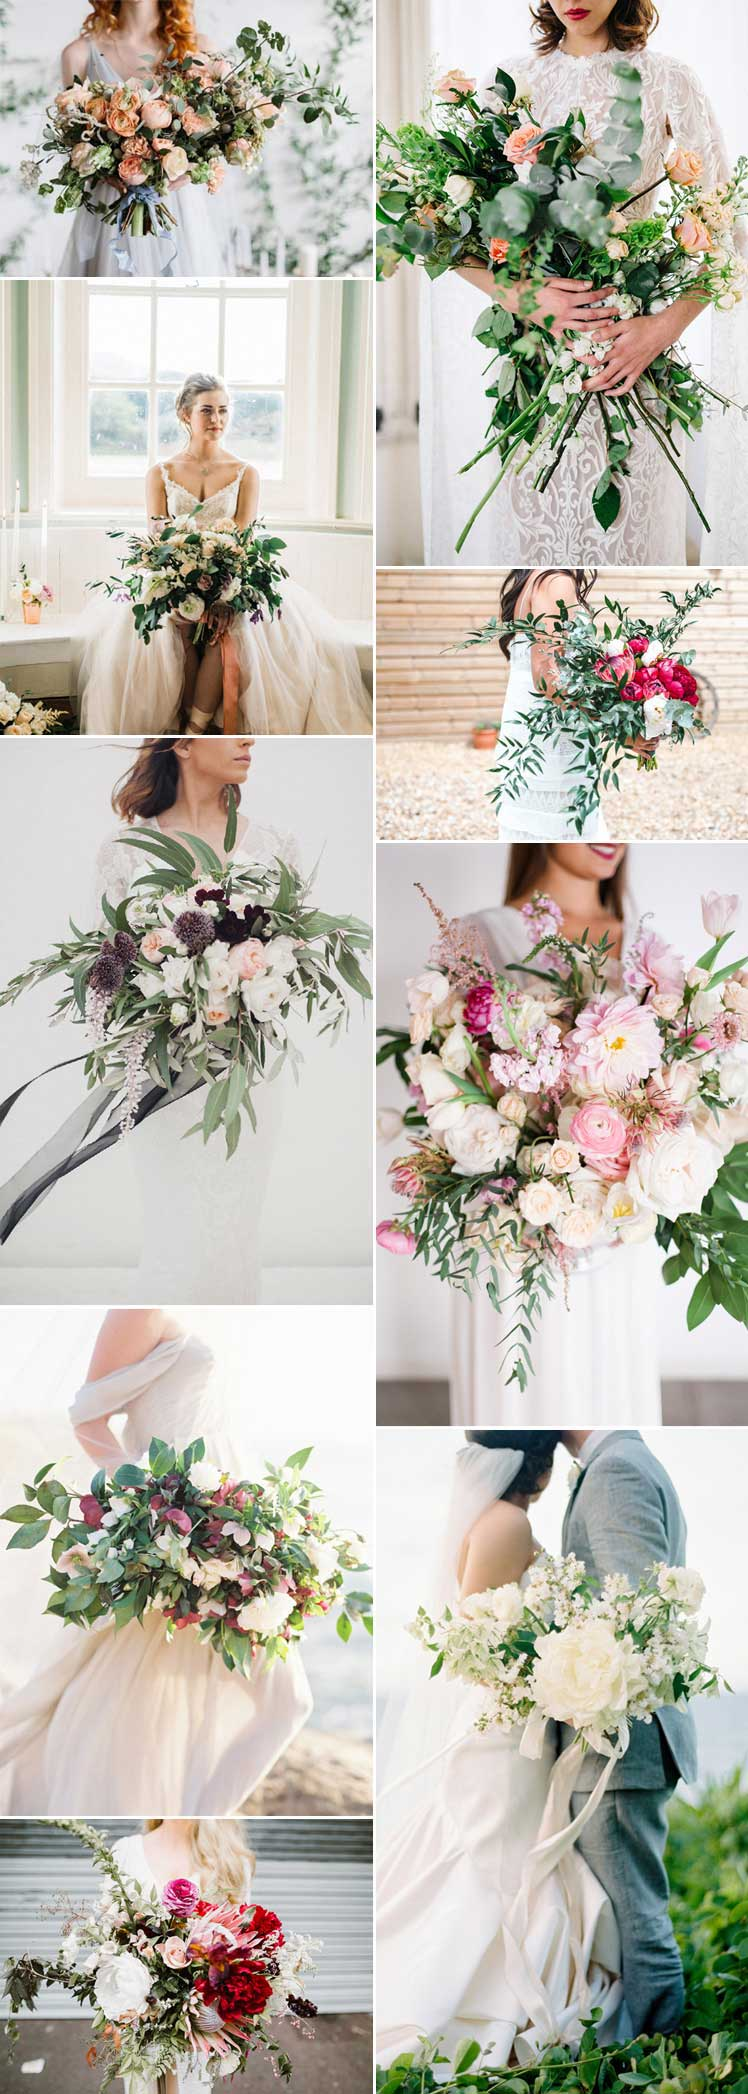 statement style with oversized bridal bouquets